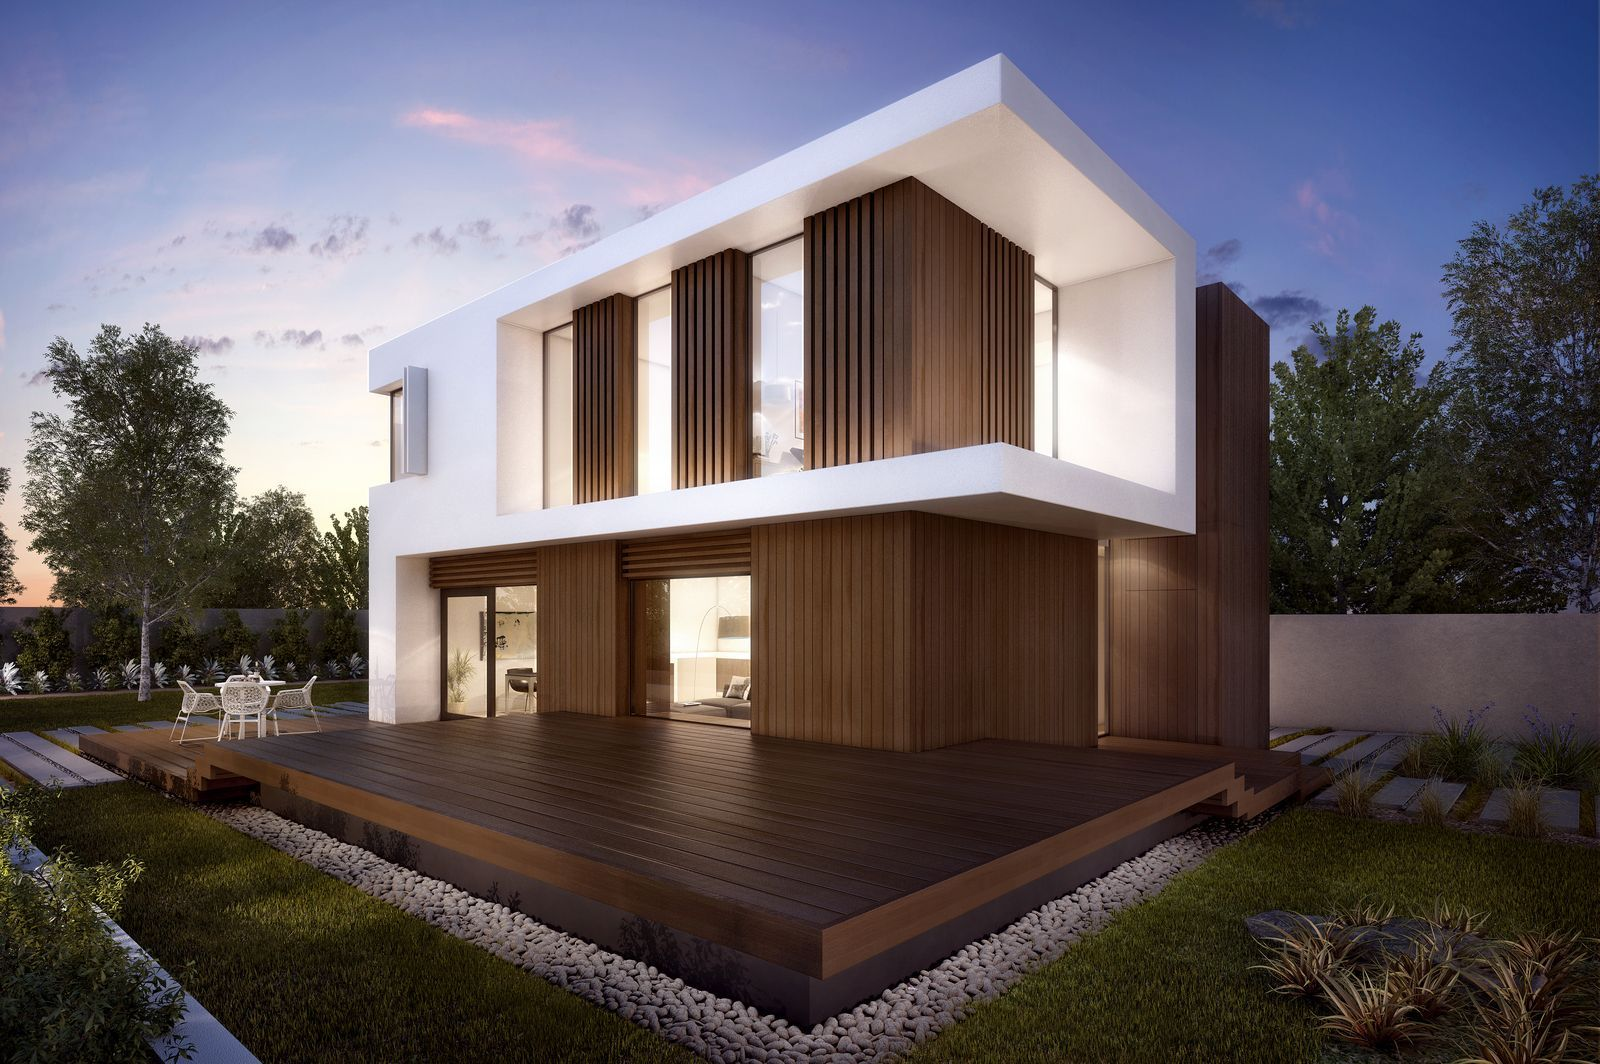 mds 10 star passive house : an absolute winner ! | melbourne